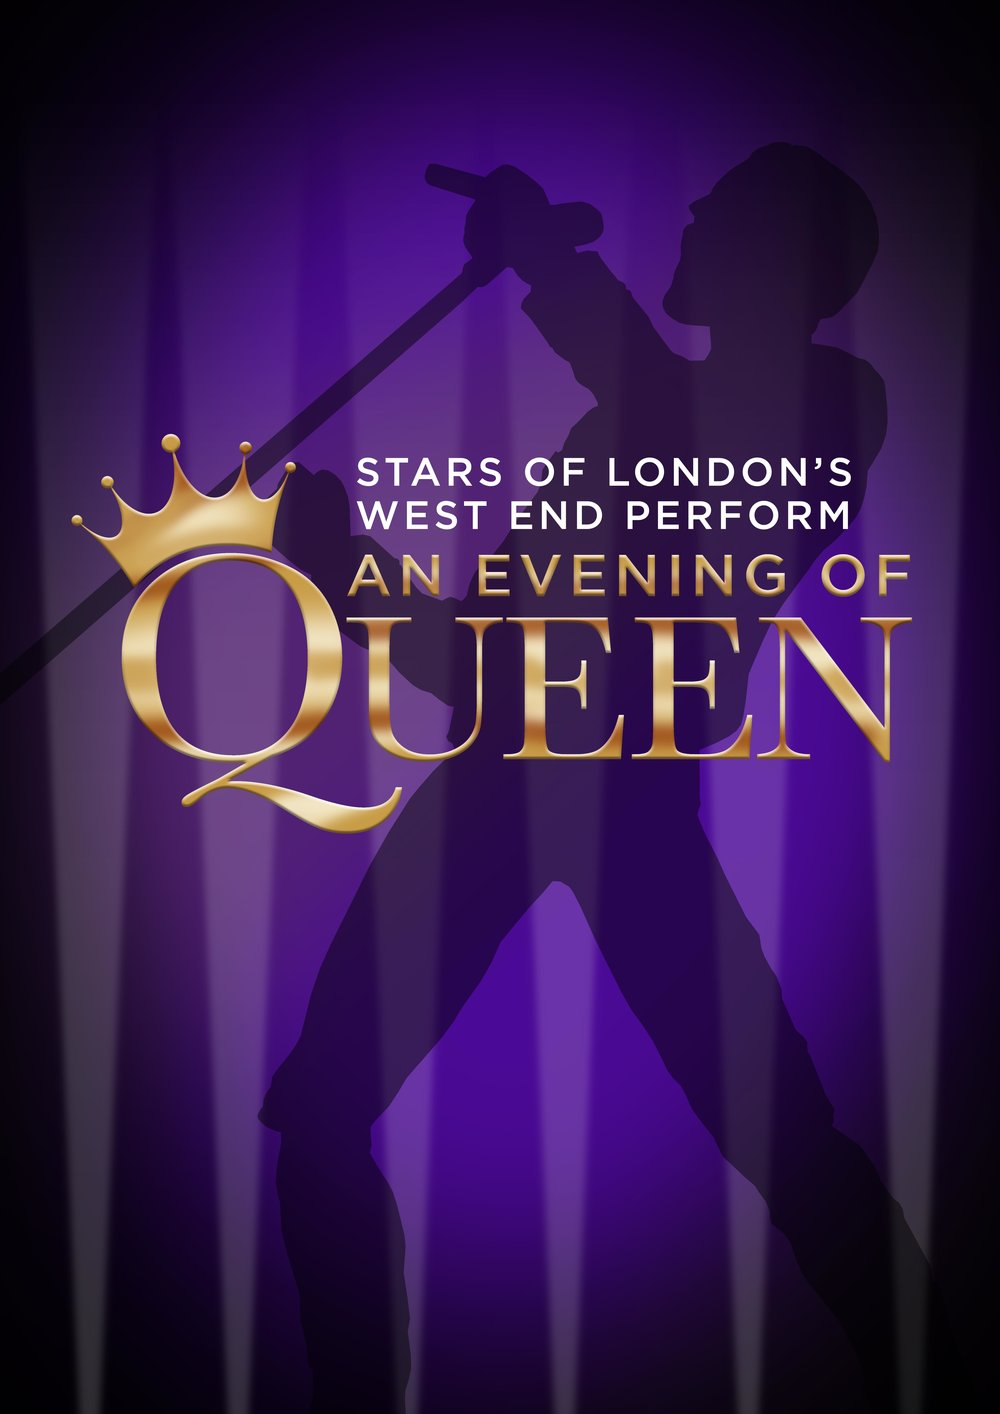 An Evening of Queen - A dazzling collection of performers from London's West End, including former stars from the smash hit musical 'We Will Rock You', come together to present an incredible tribute to one of the world's great rock bands.We are music supervisor and fixer for these sold out UK outdoor concerts.